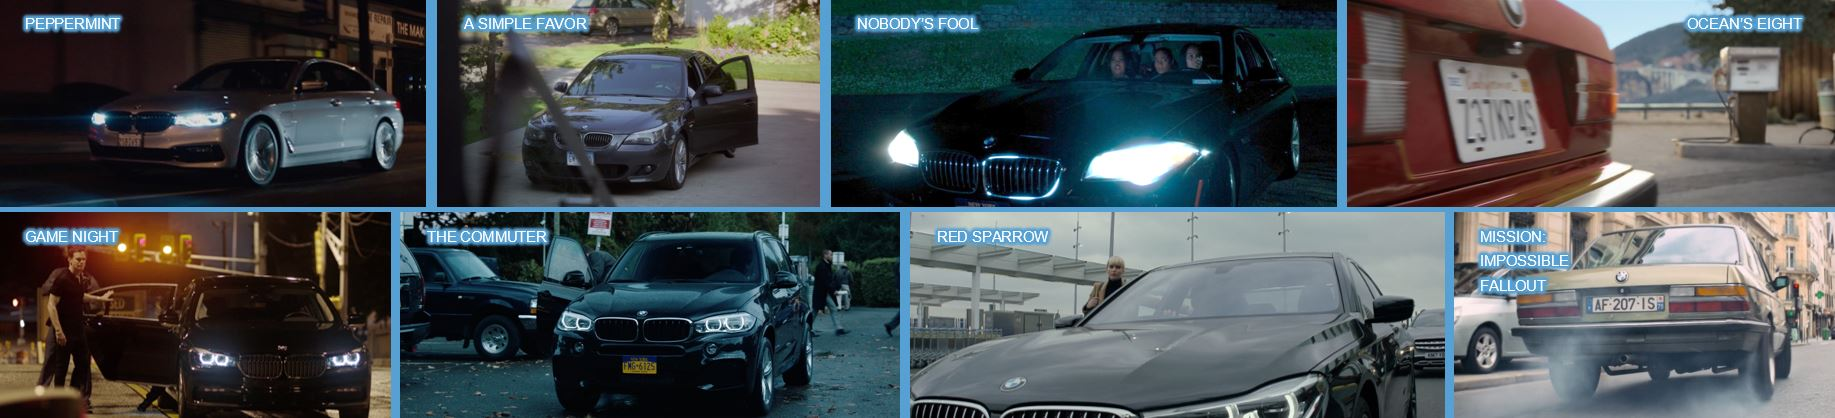 BMW concave brand tracking product placement top 10 brands in 2018 movies branded entertainment brand integration peppermint nobody's fool a simple favour ocean's eight game night the commuter red sparrow mission impossible fallout